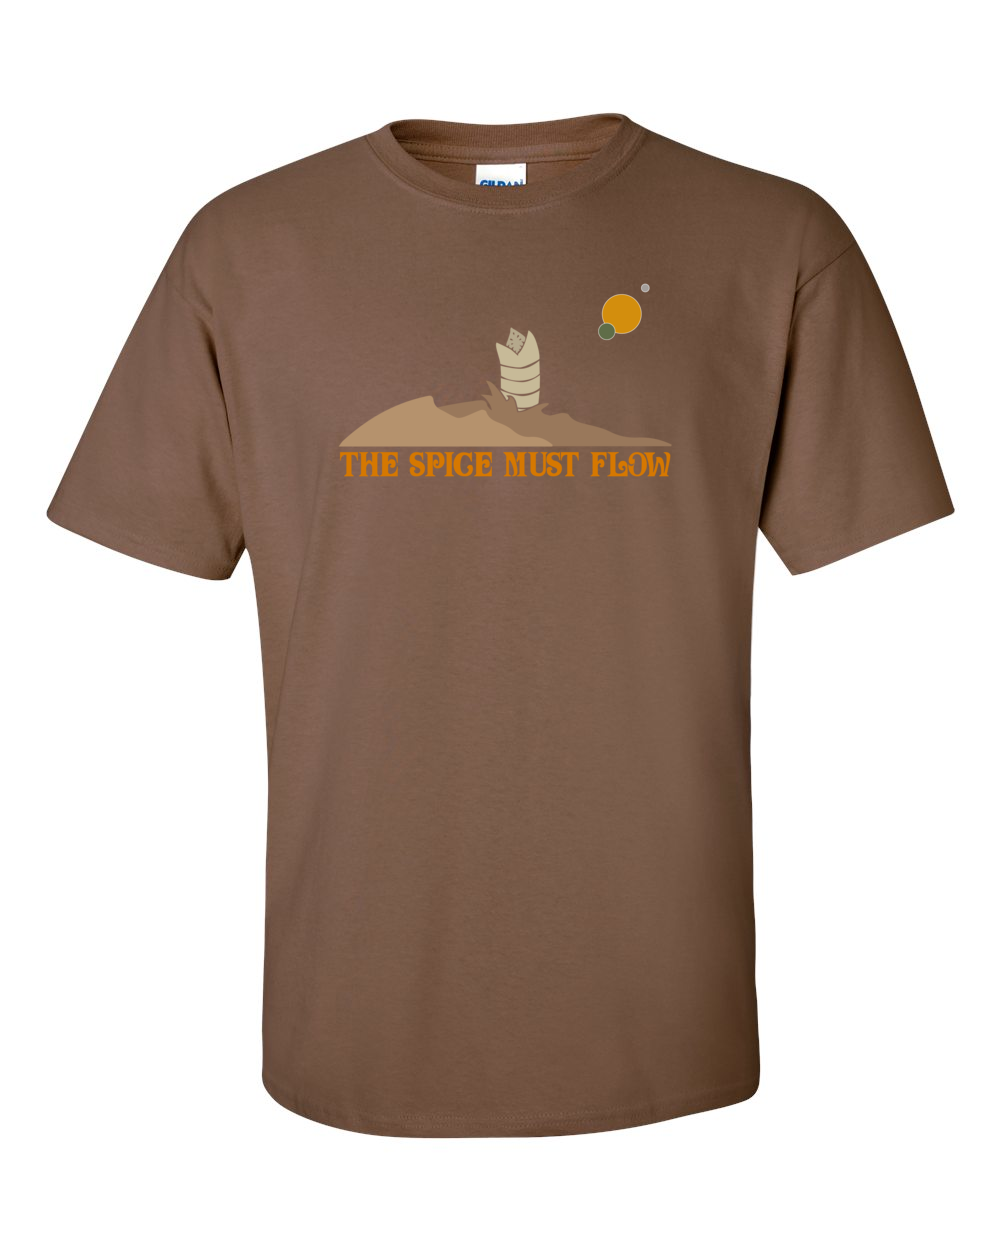 The spice must flow unisex t shirt